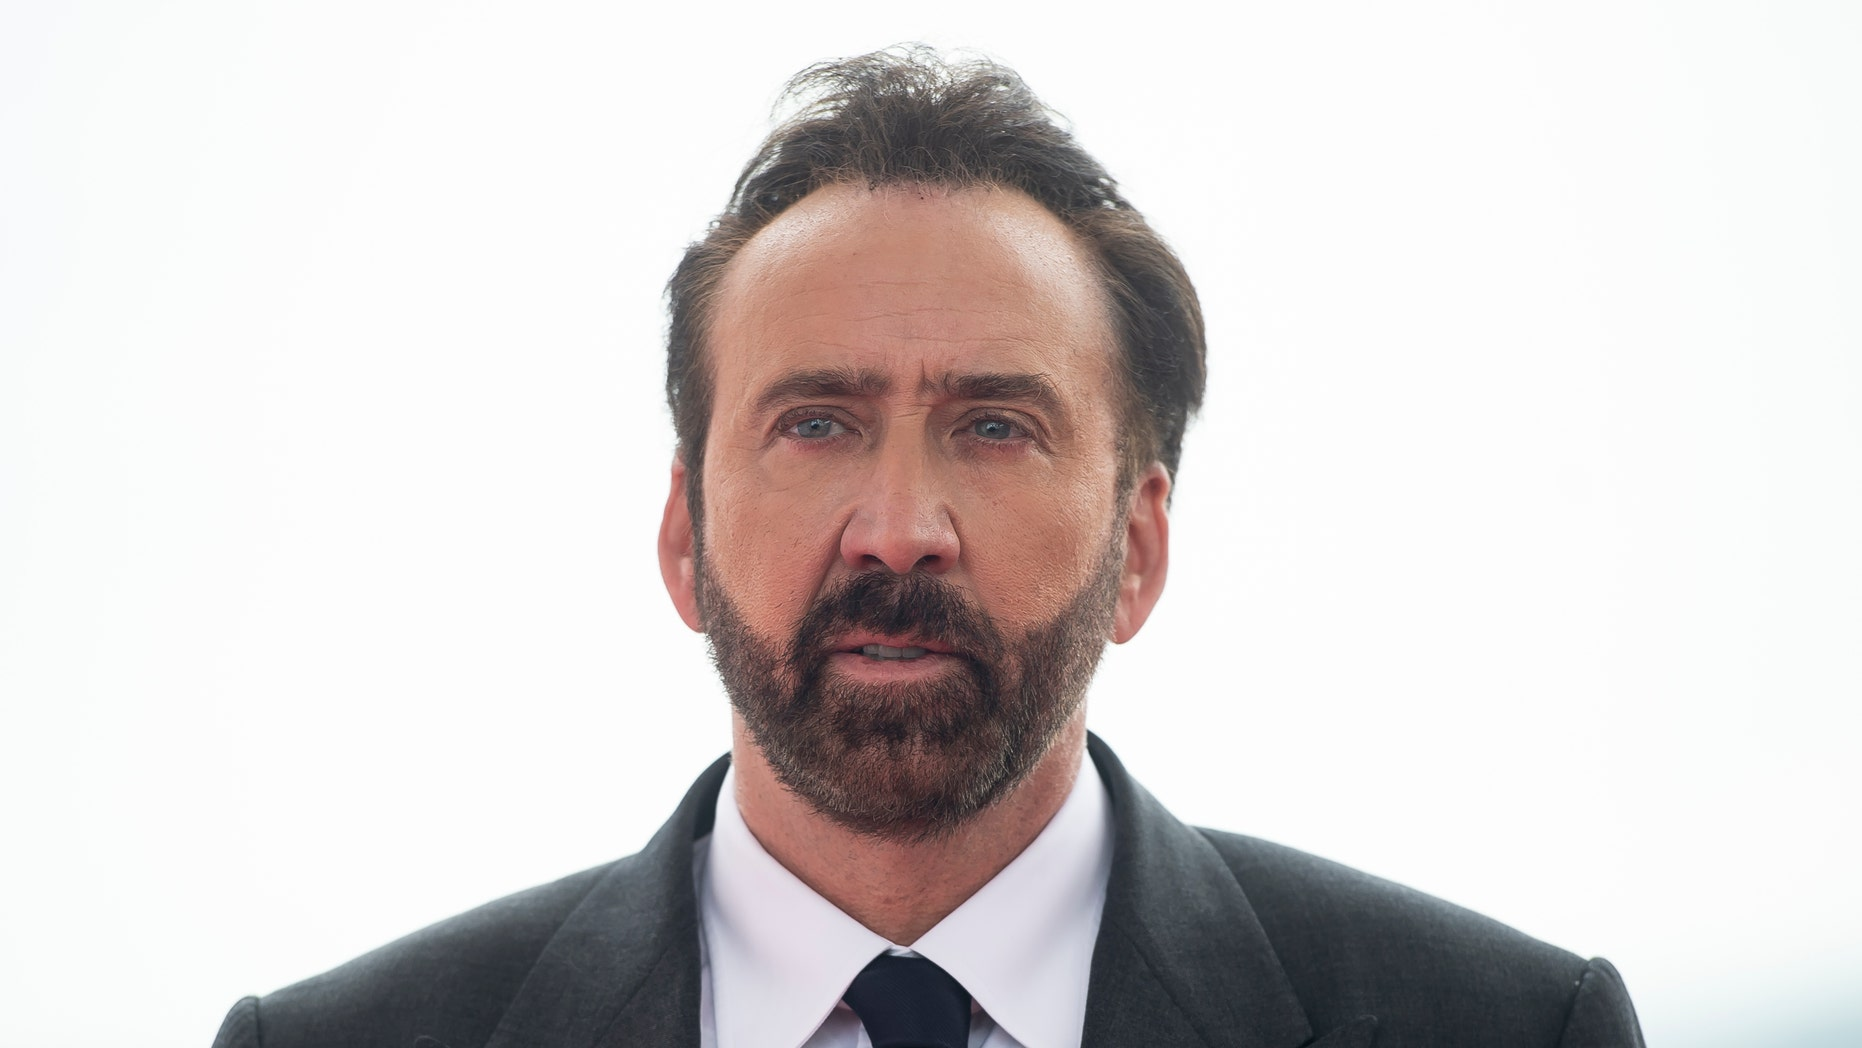 Nicolas Cage reportedly files for annulment four days after marriage